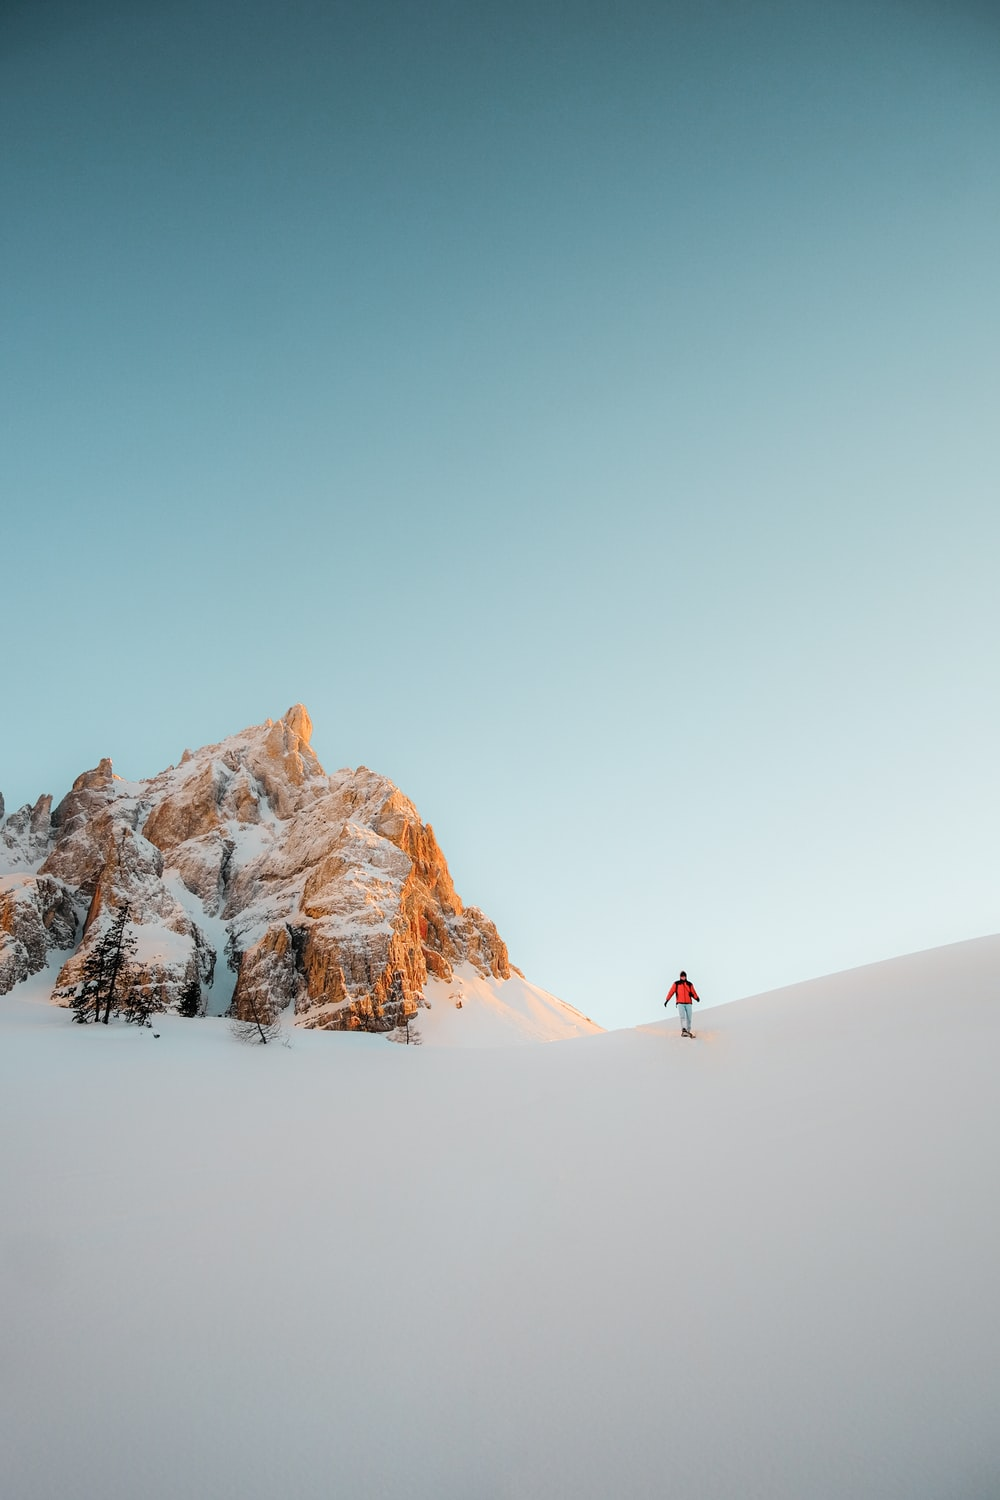 person in red jacket walking on snow covered ground during daytime